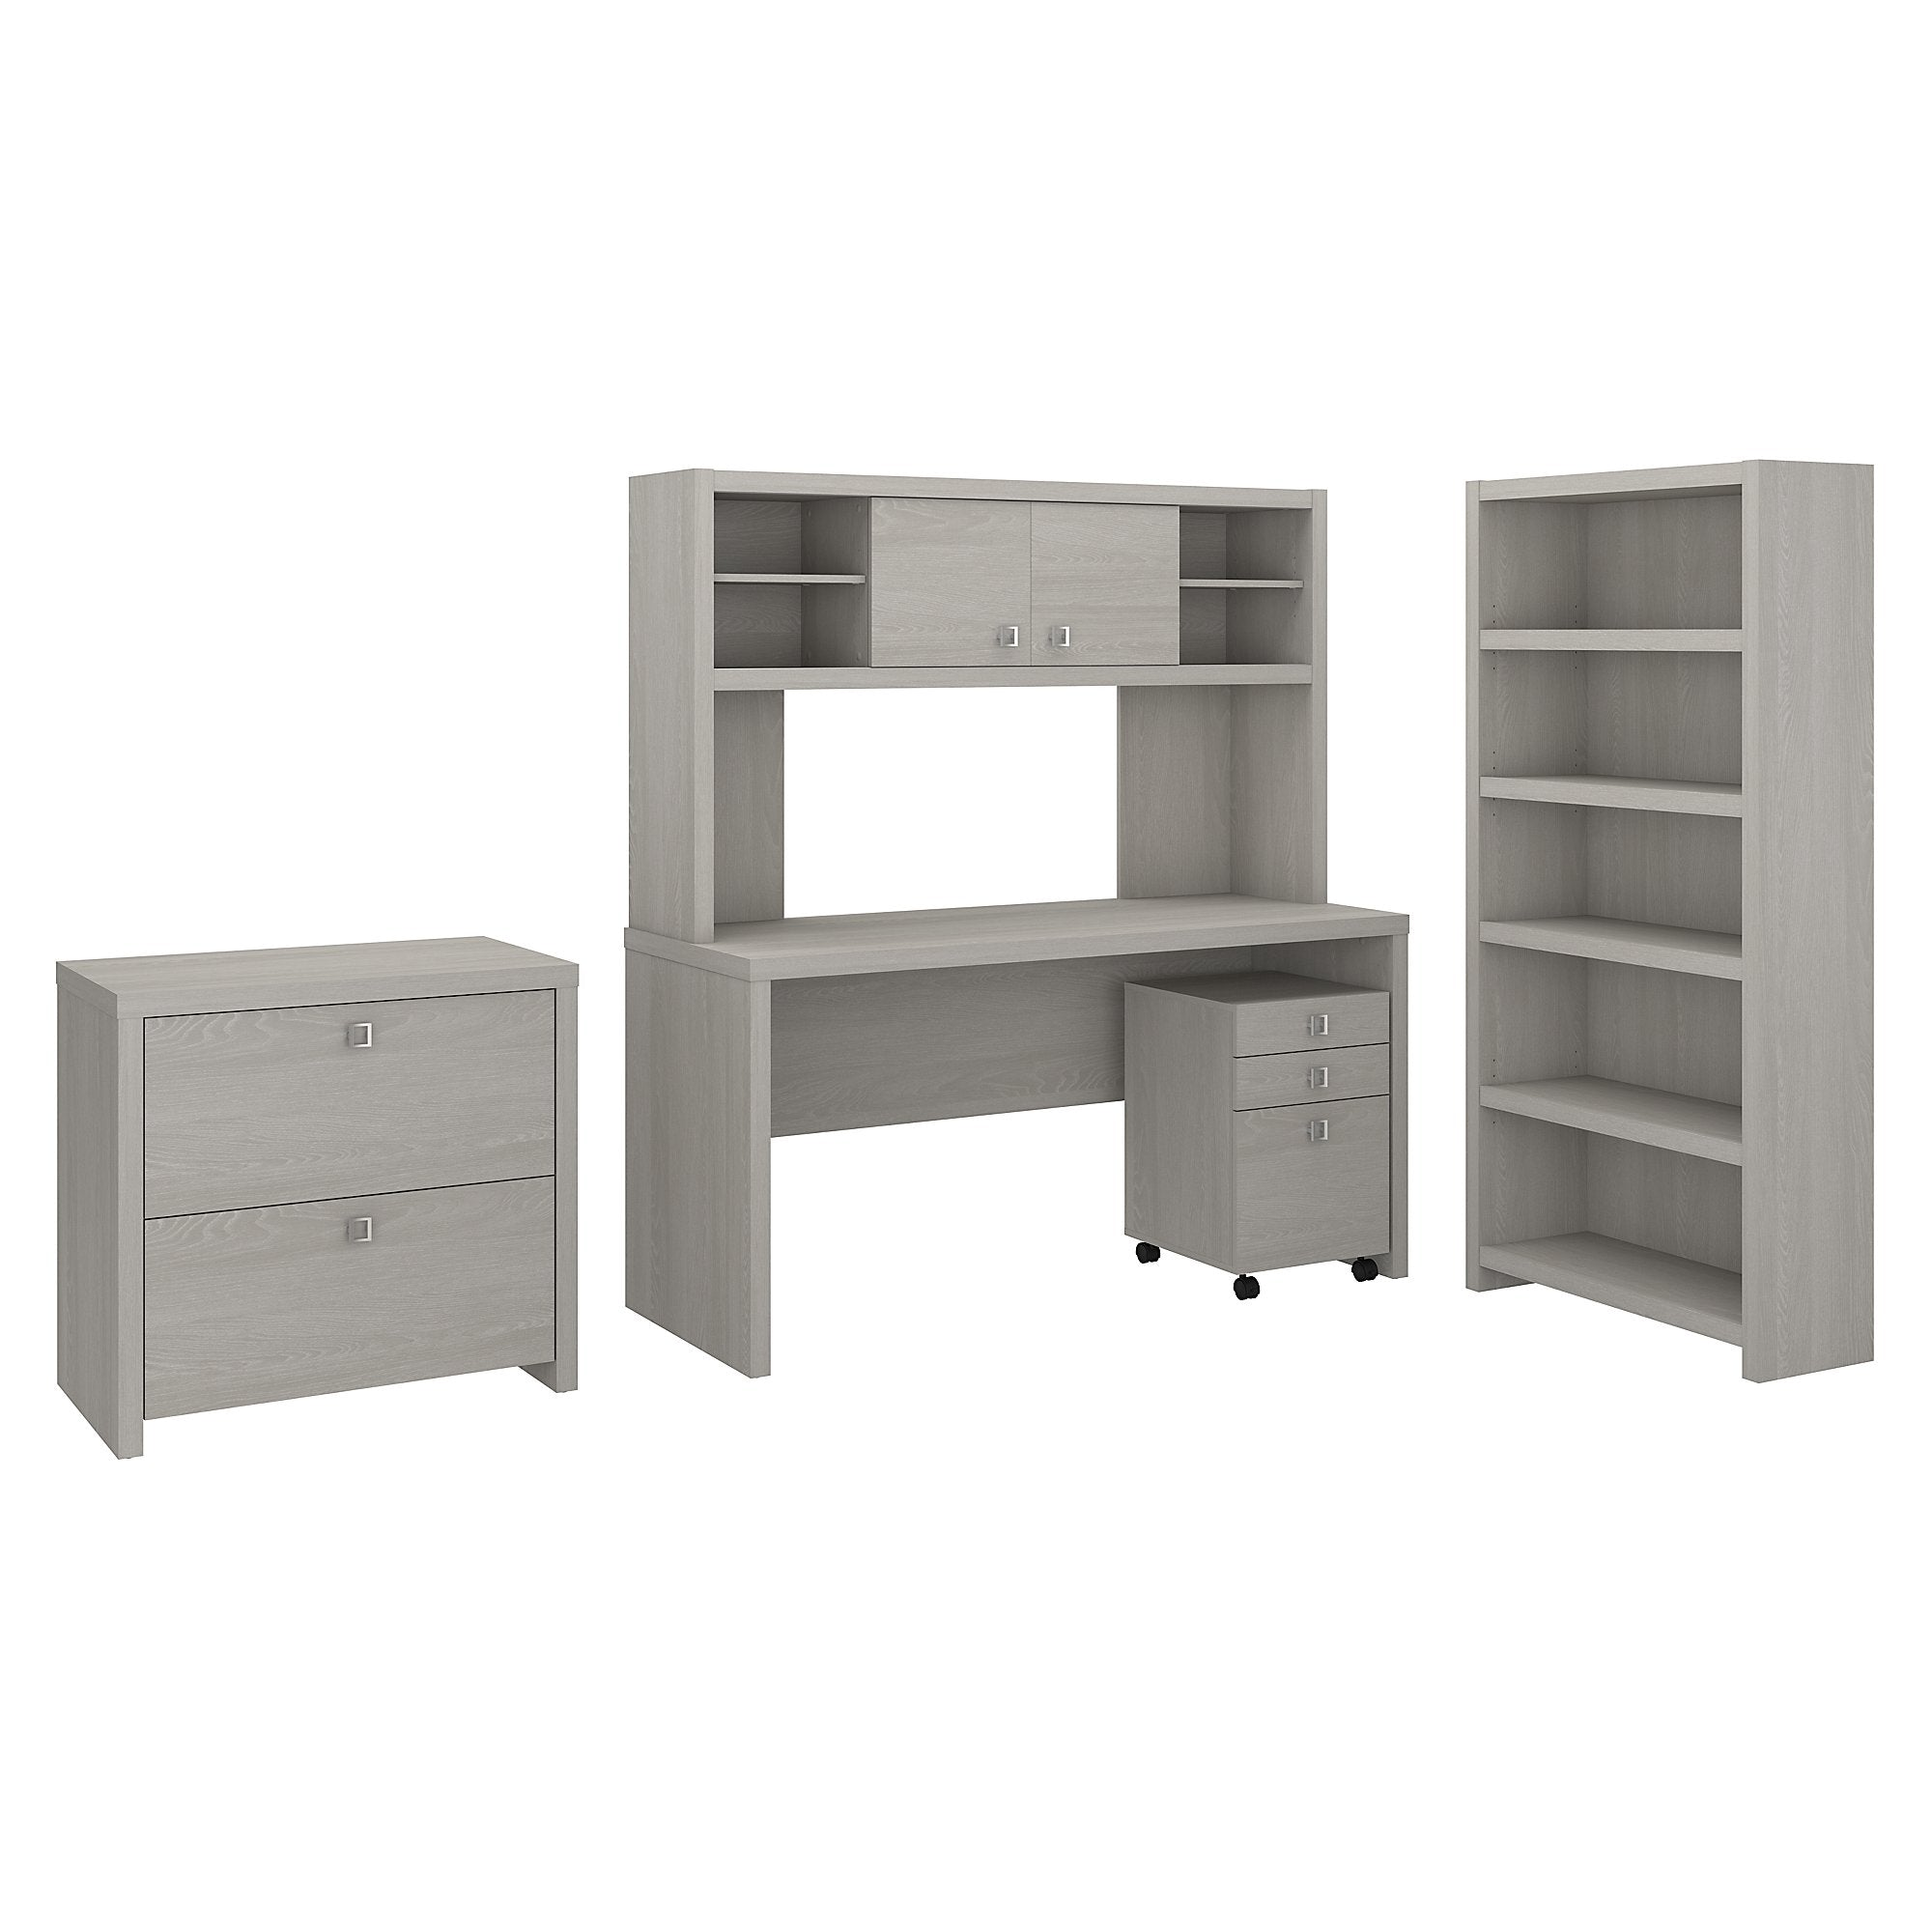 Office by kathy ireland® Gray Sand Echo Desk with Hutch, Bookcase and File Cabinets